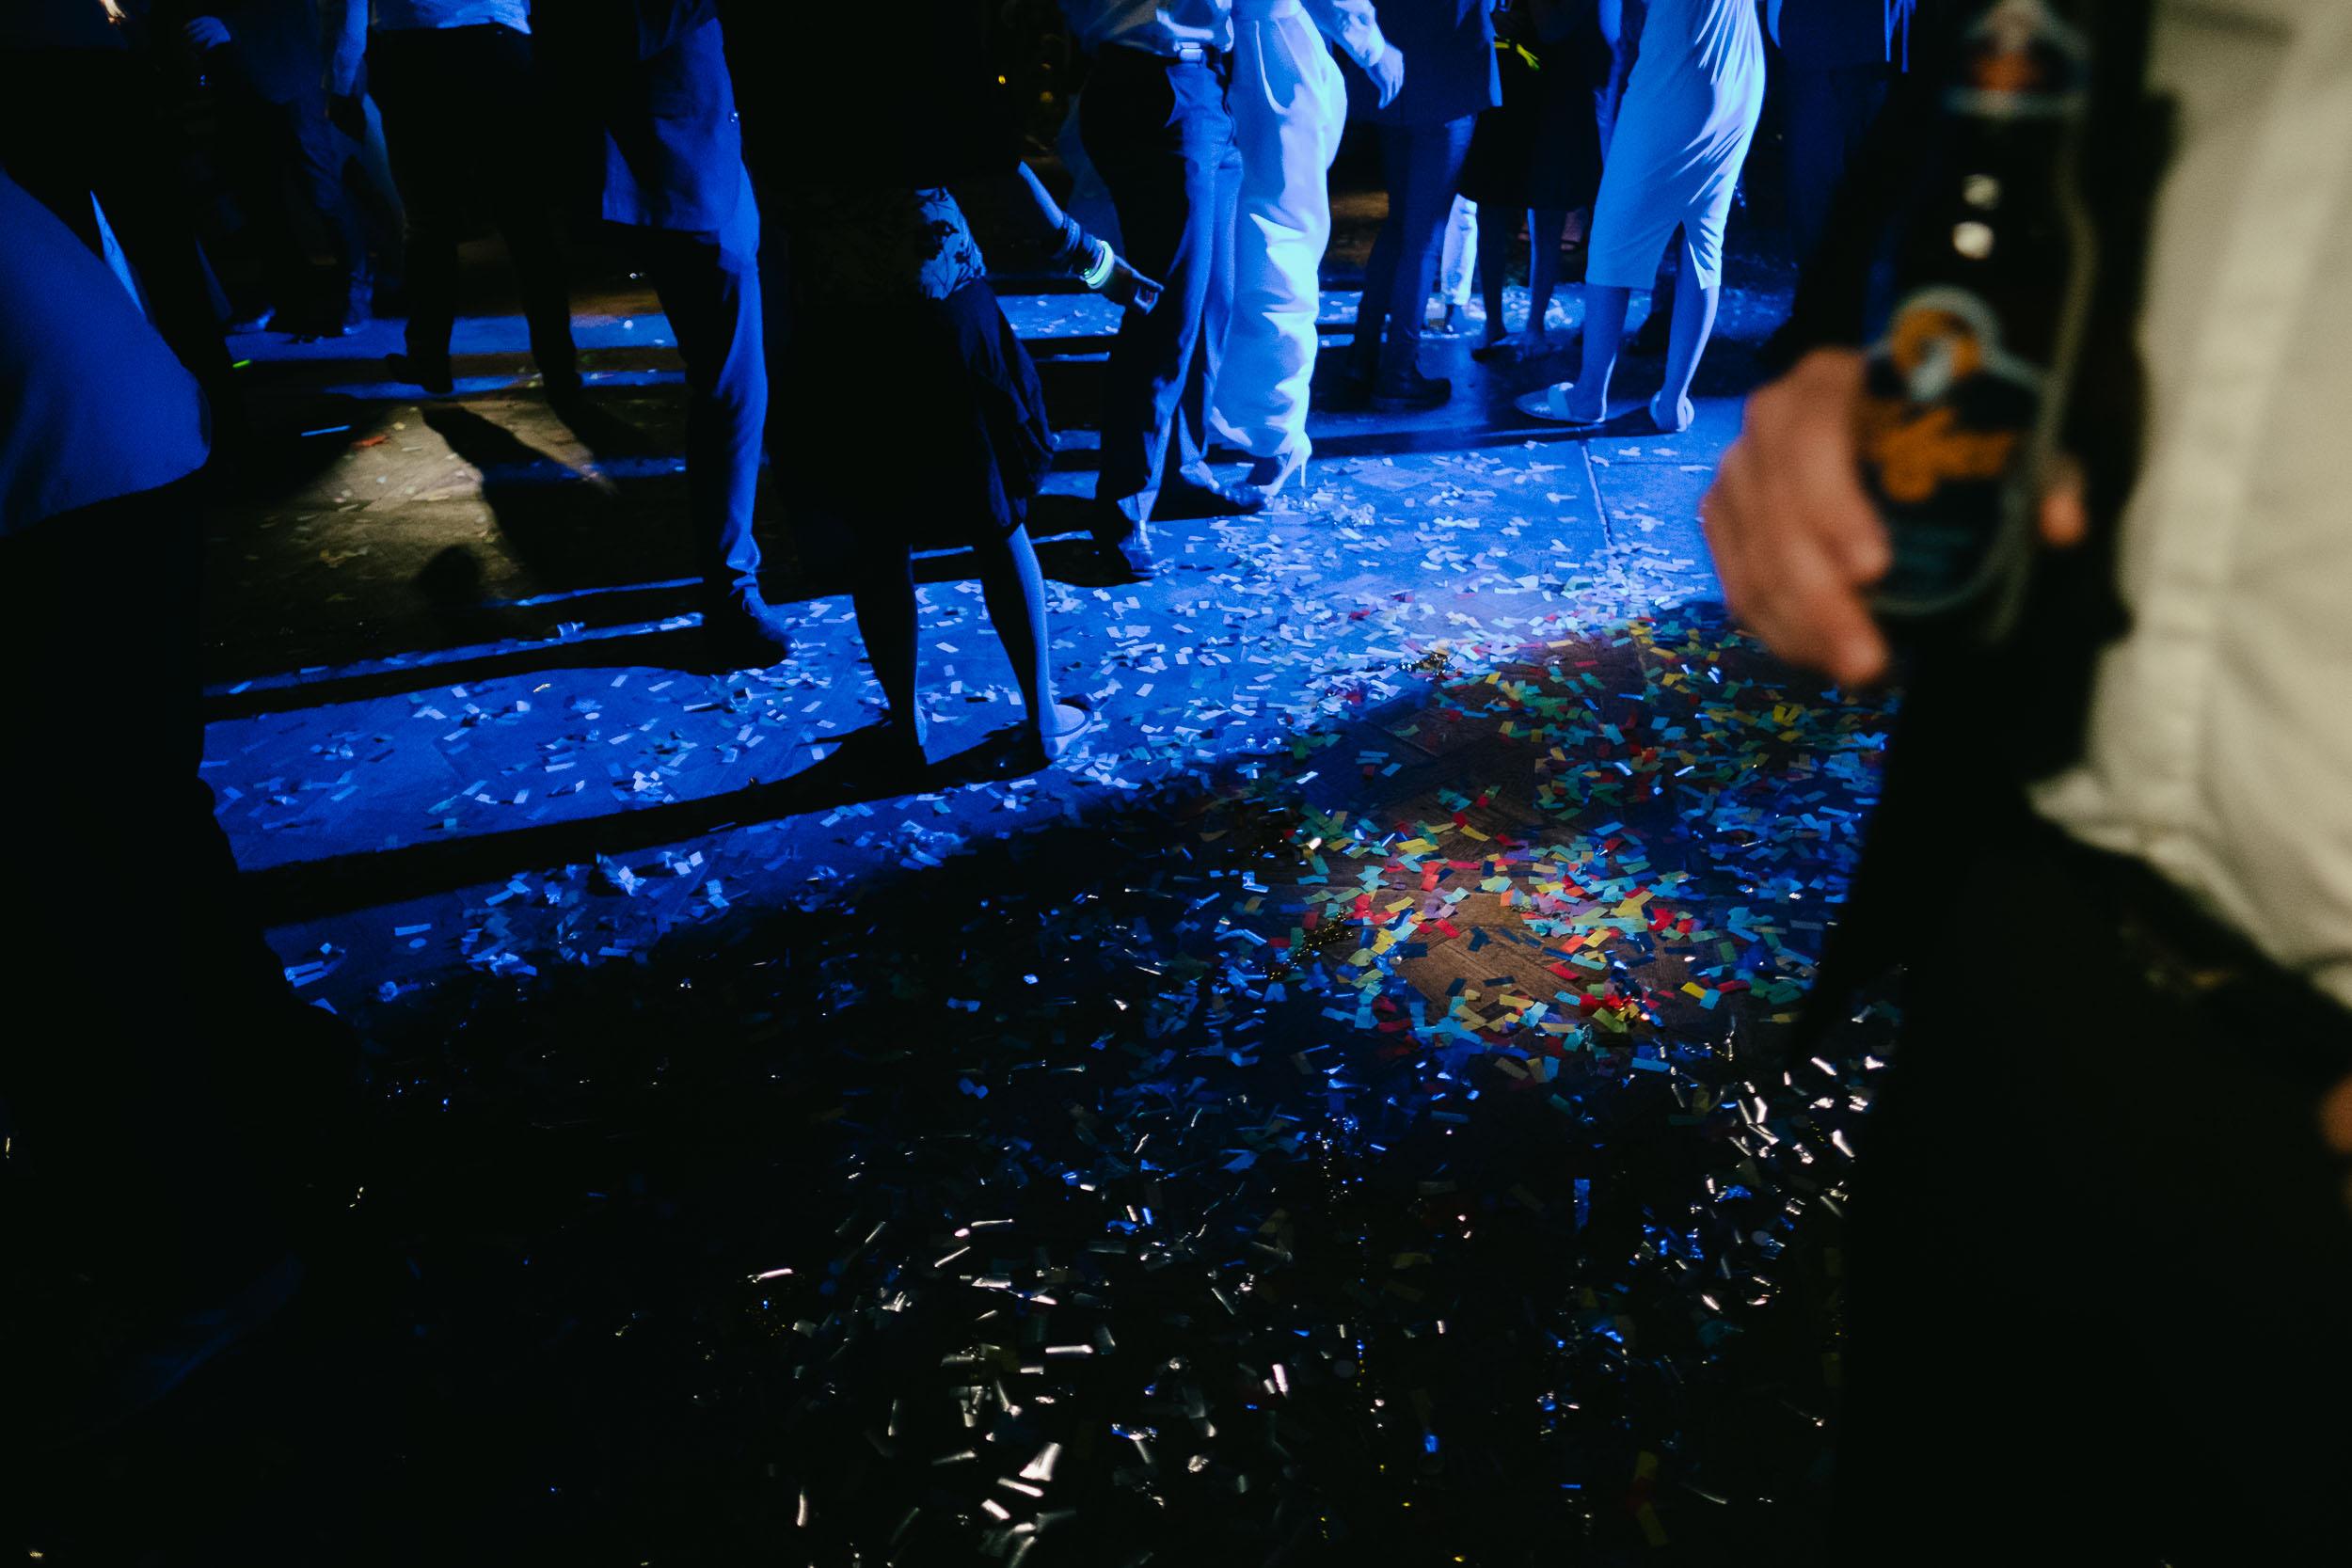 The floor of Le Petit Château is covered in confetti